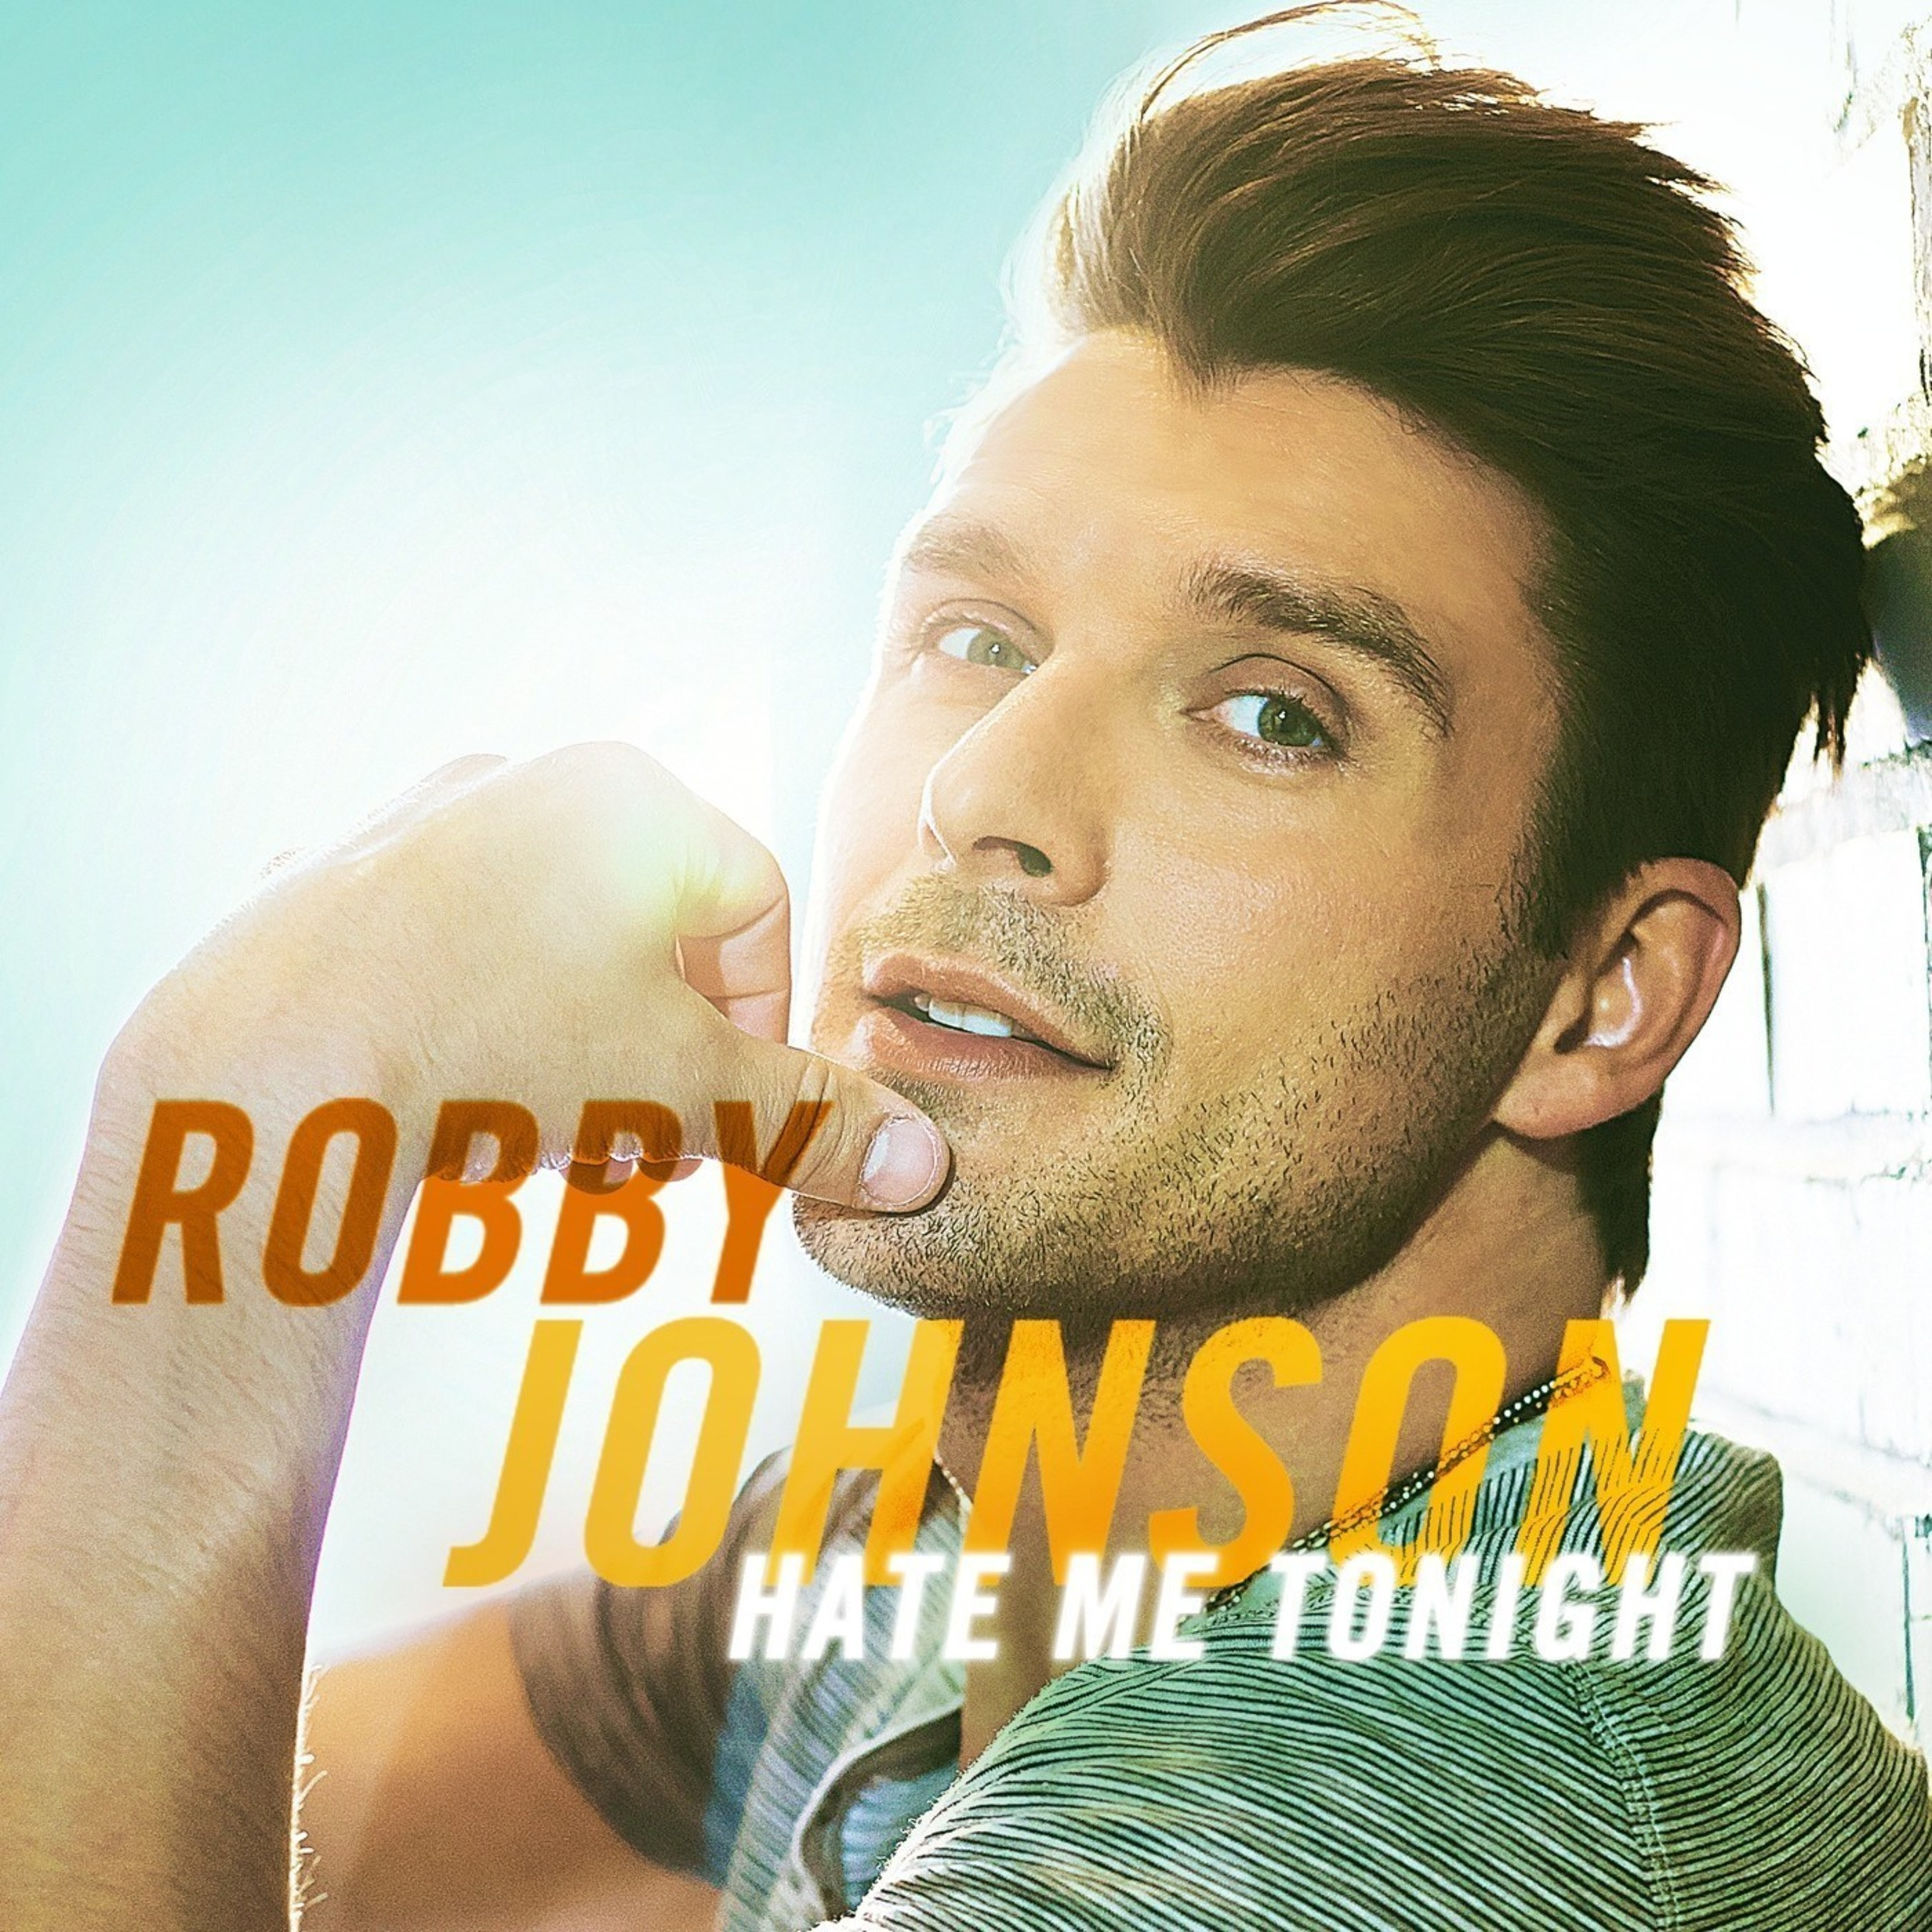 Robby Johnson Seeks Love For 'Hate Me Tonight' Single From Upcoming Don't Look Back Album